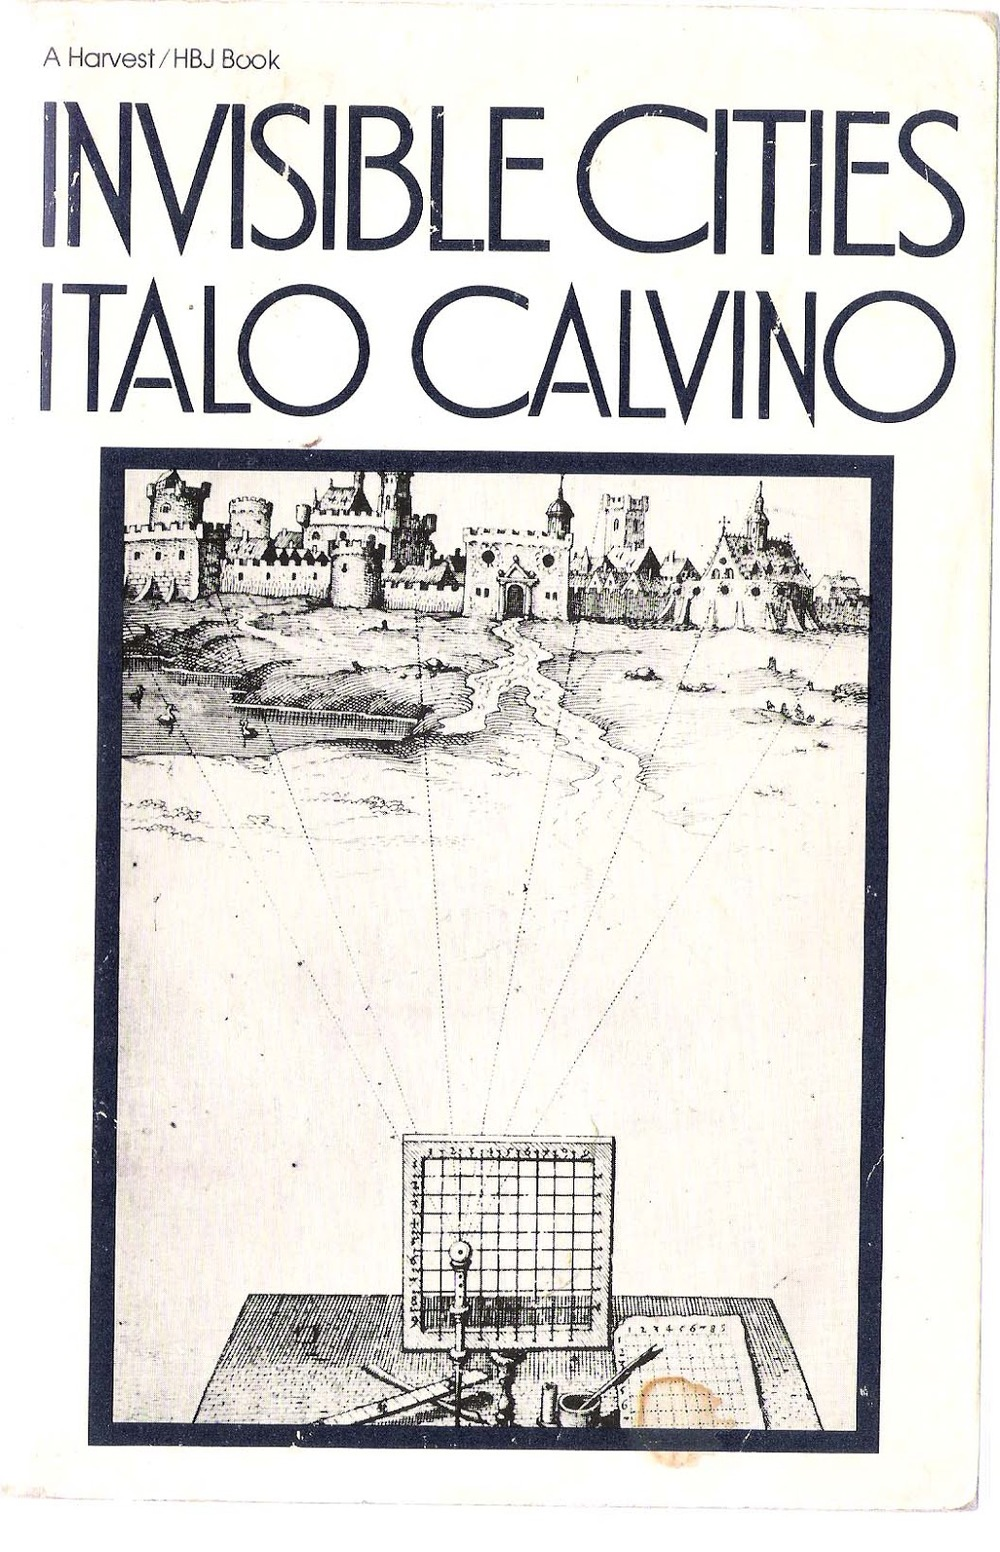 italo calvino s invisible cities Invisible cities by italo calvino, 9780099429838, available at book depository with free delivery worldwide.